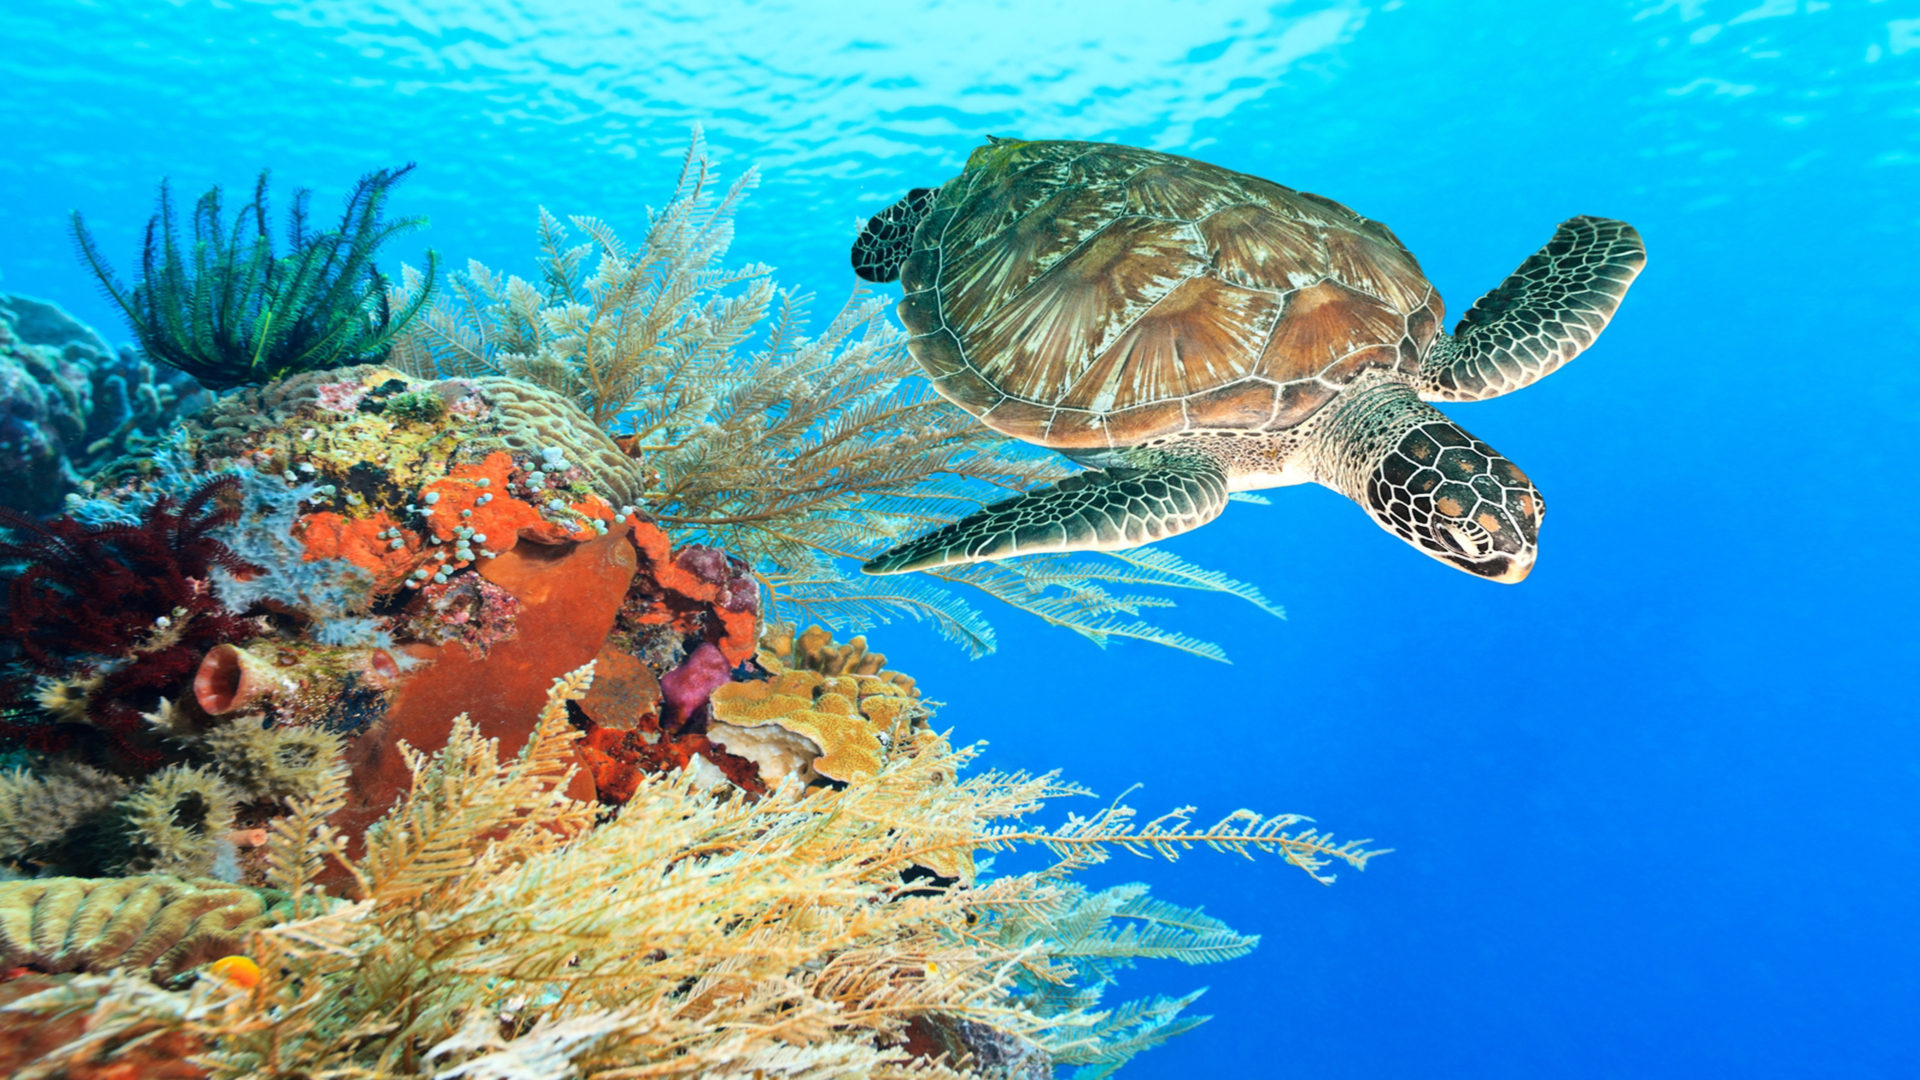 Fall Wallpaper For Android Tablet Turtle Swimming Underwater Among The Coral Reef